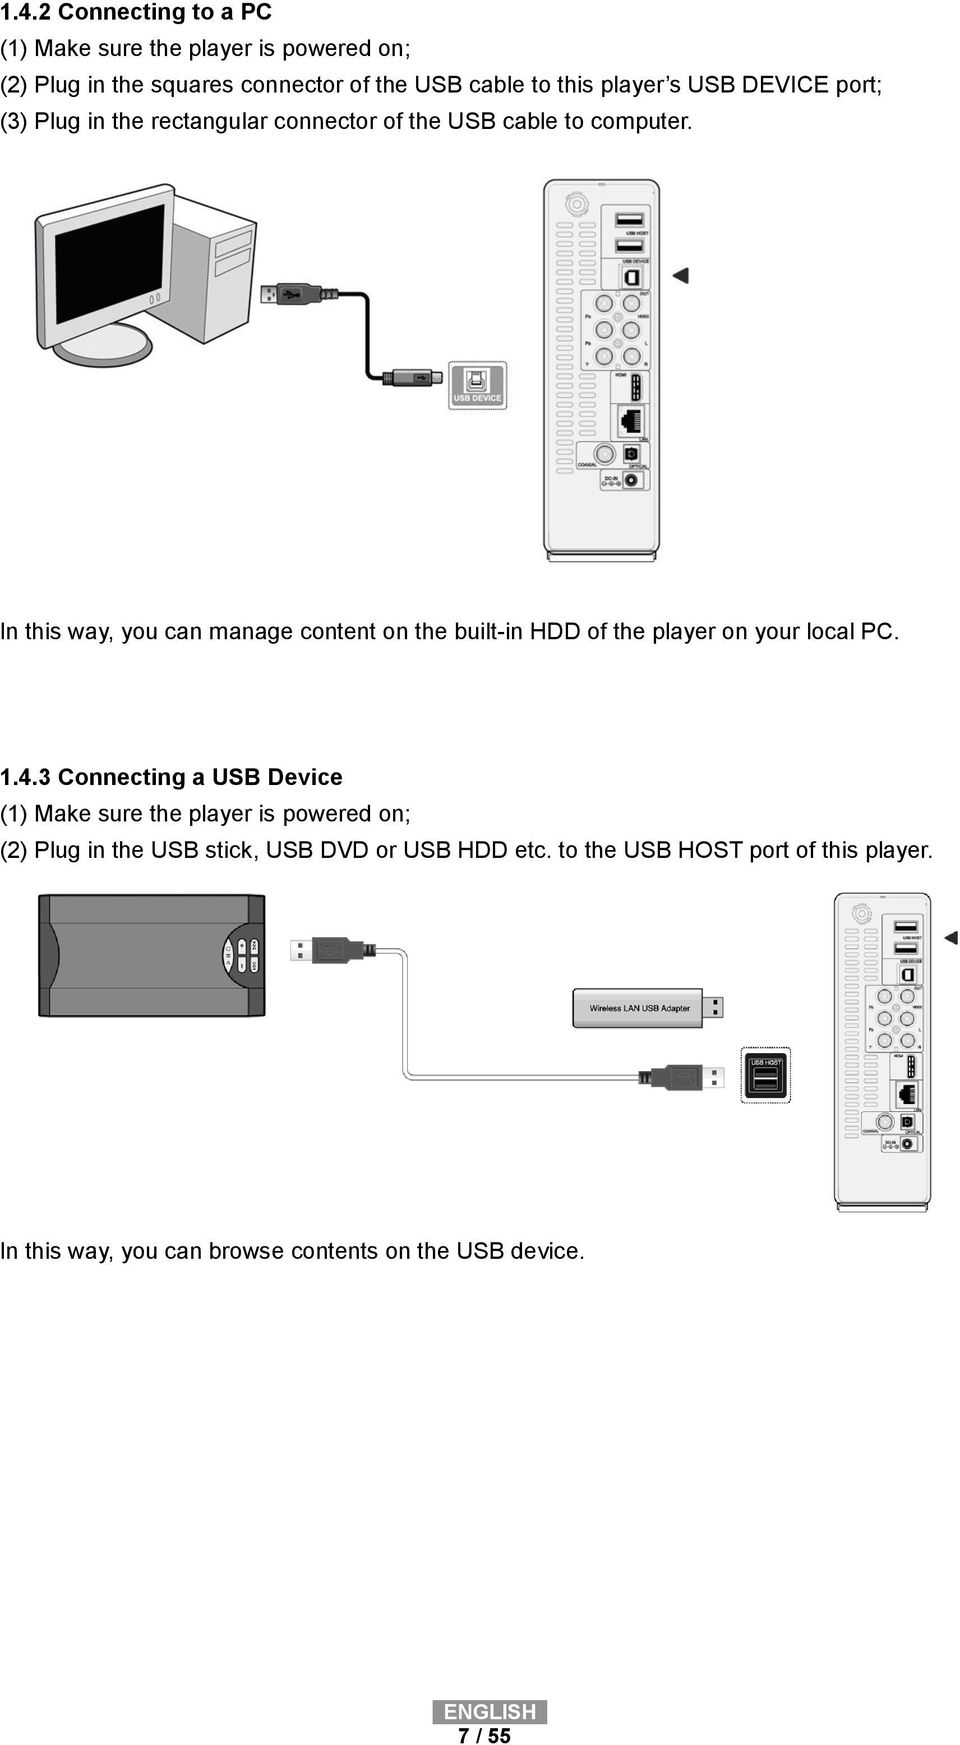 In this way, you can manage content on the built-in HDD of the player on your local PC. 1.4.